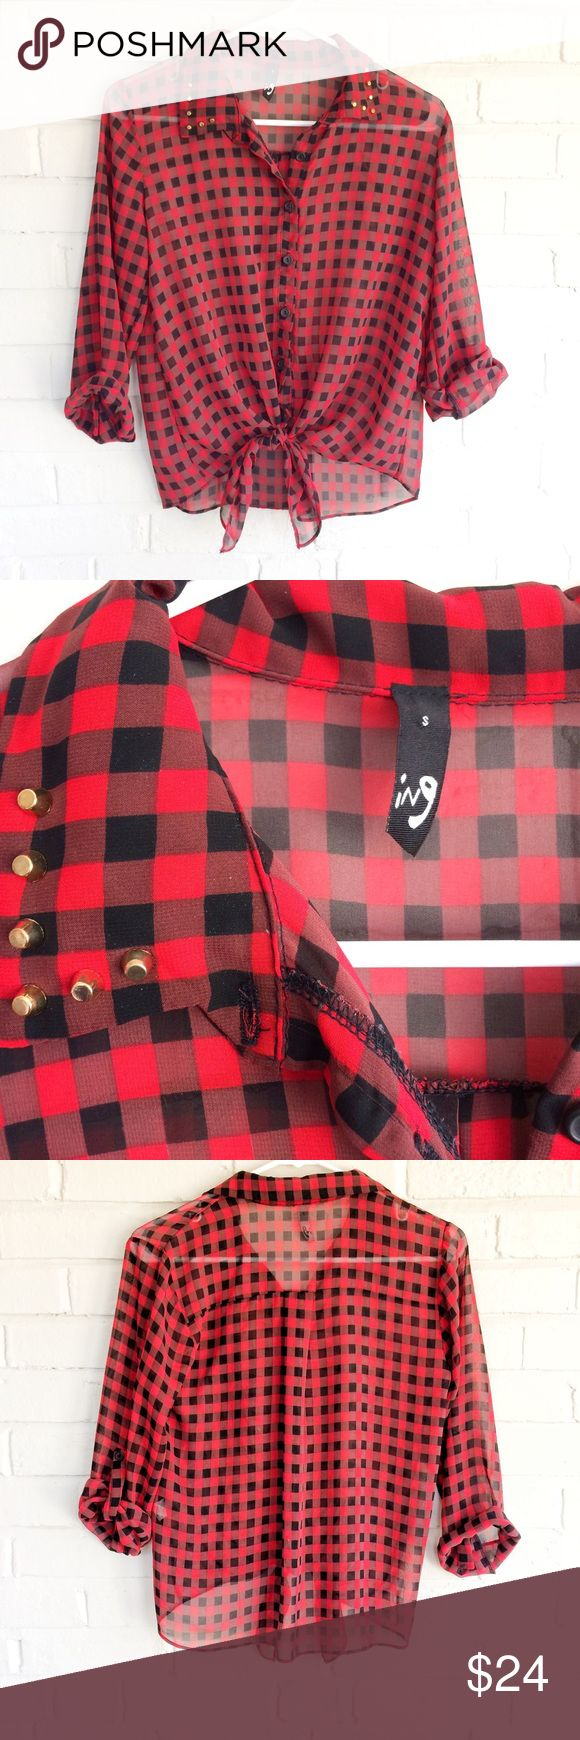 ING sheer tartan plaid tied top w/ studded collar Make an offer! No trades. Bundle and save - I'm a fast shipper! ING Tops Button Down Shirts